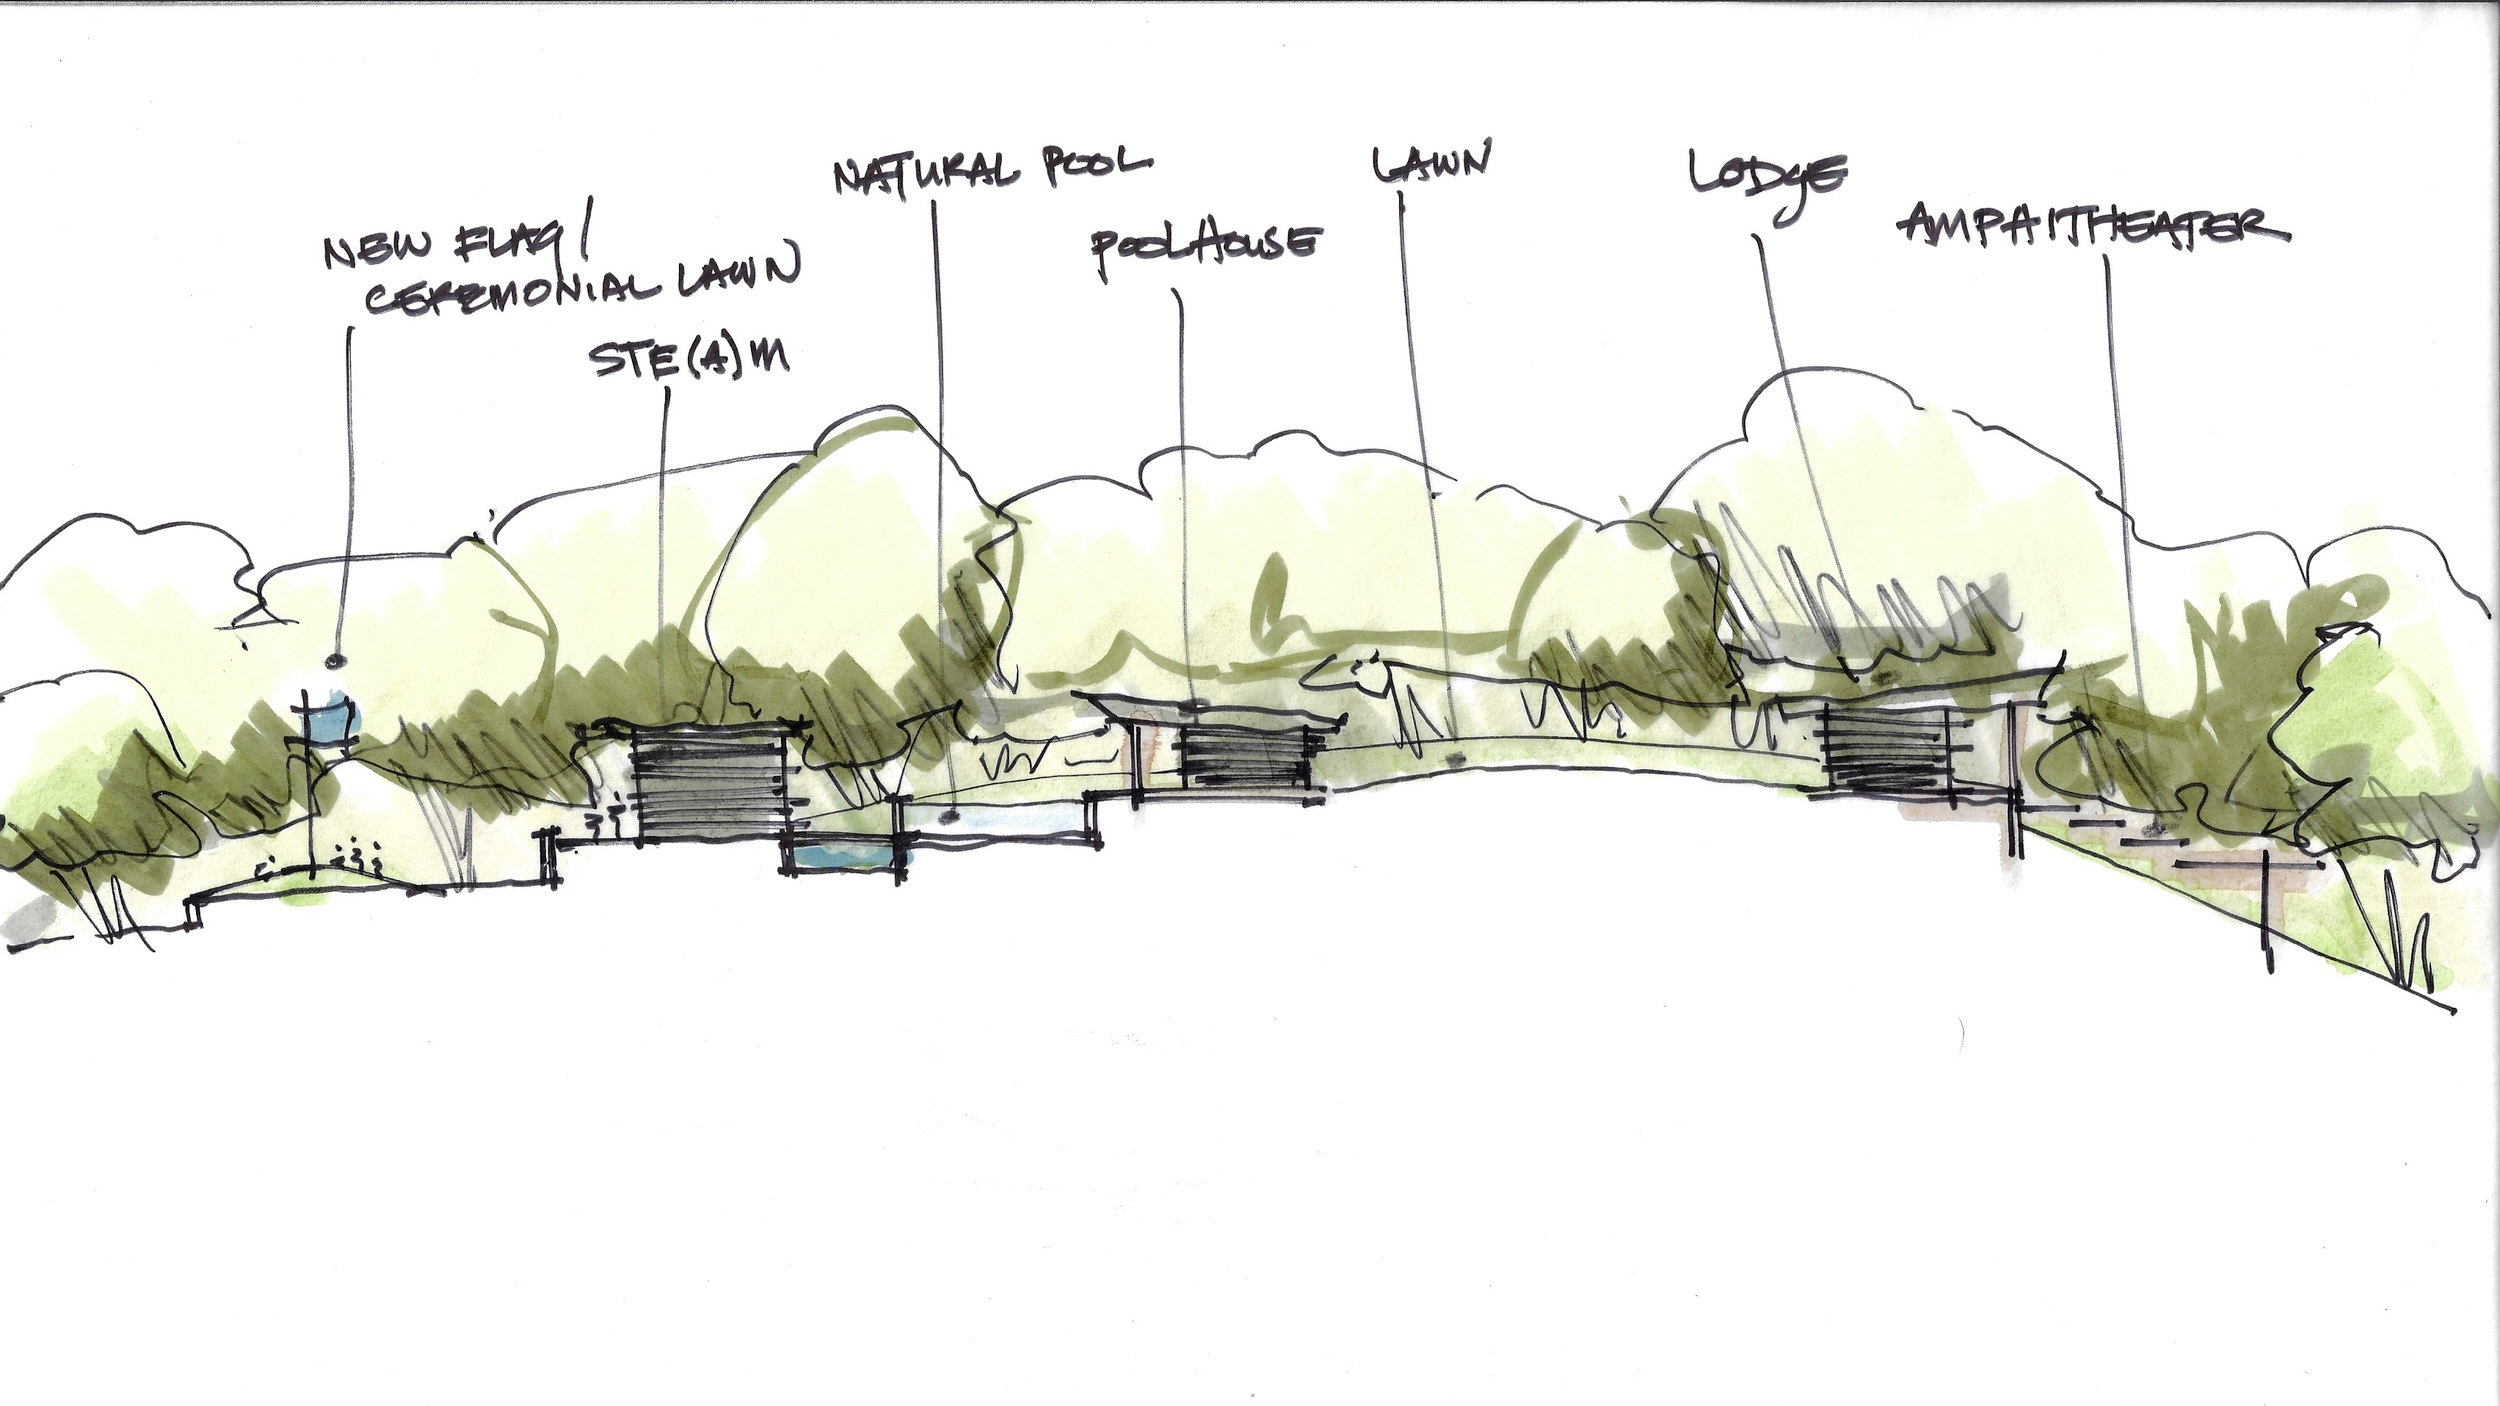 Tongawood STEAM Center concept plan_Page_3.jpg